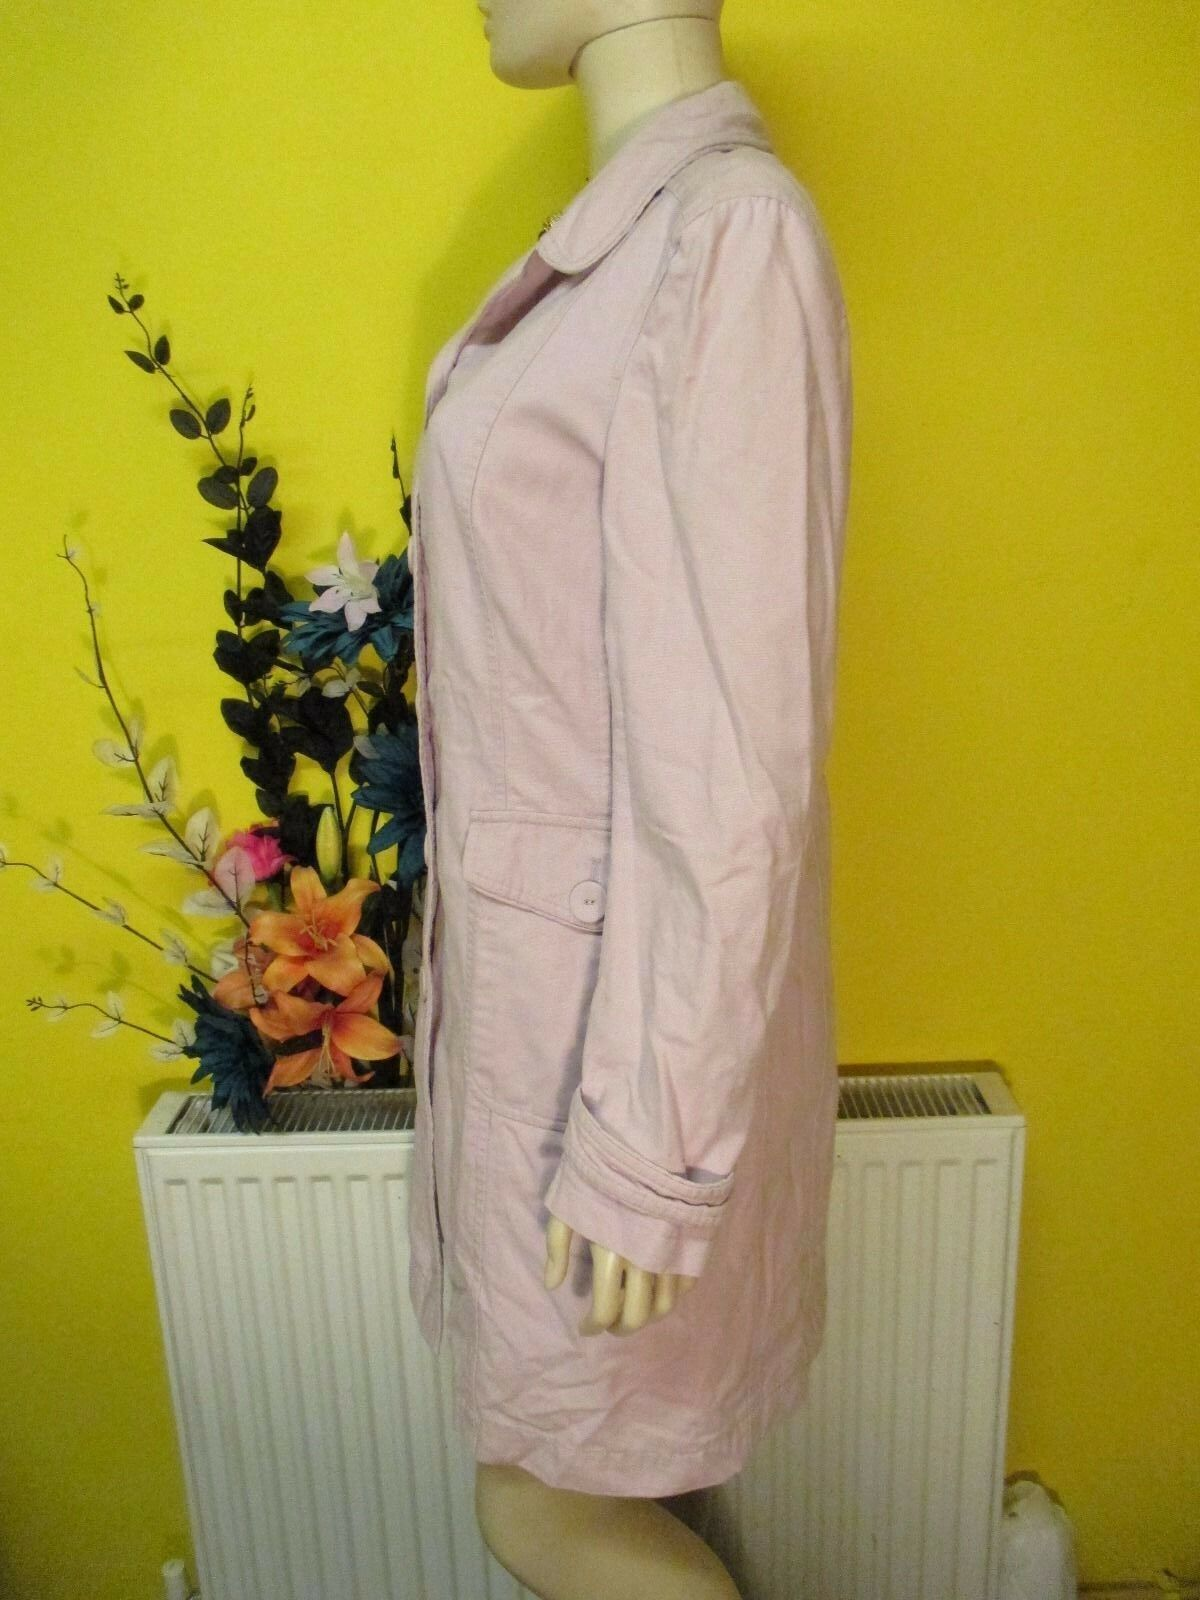 MONSOON PINK PINK PINK COAT SIZE 10 CRUISE HOLIDAYS ETC.. 4c83a2